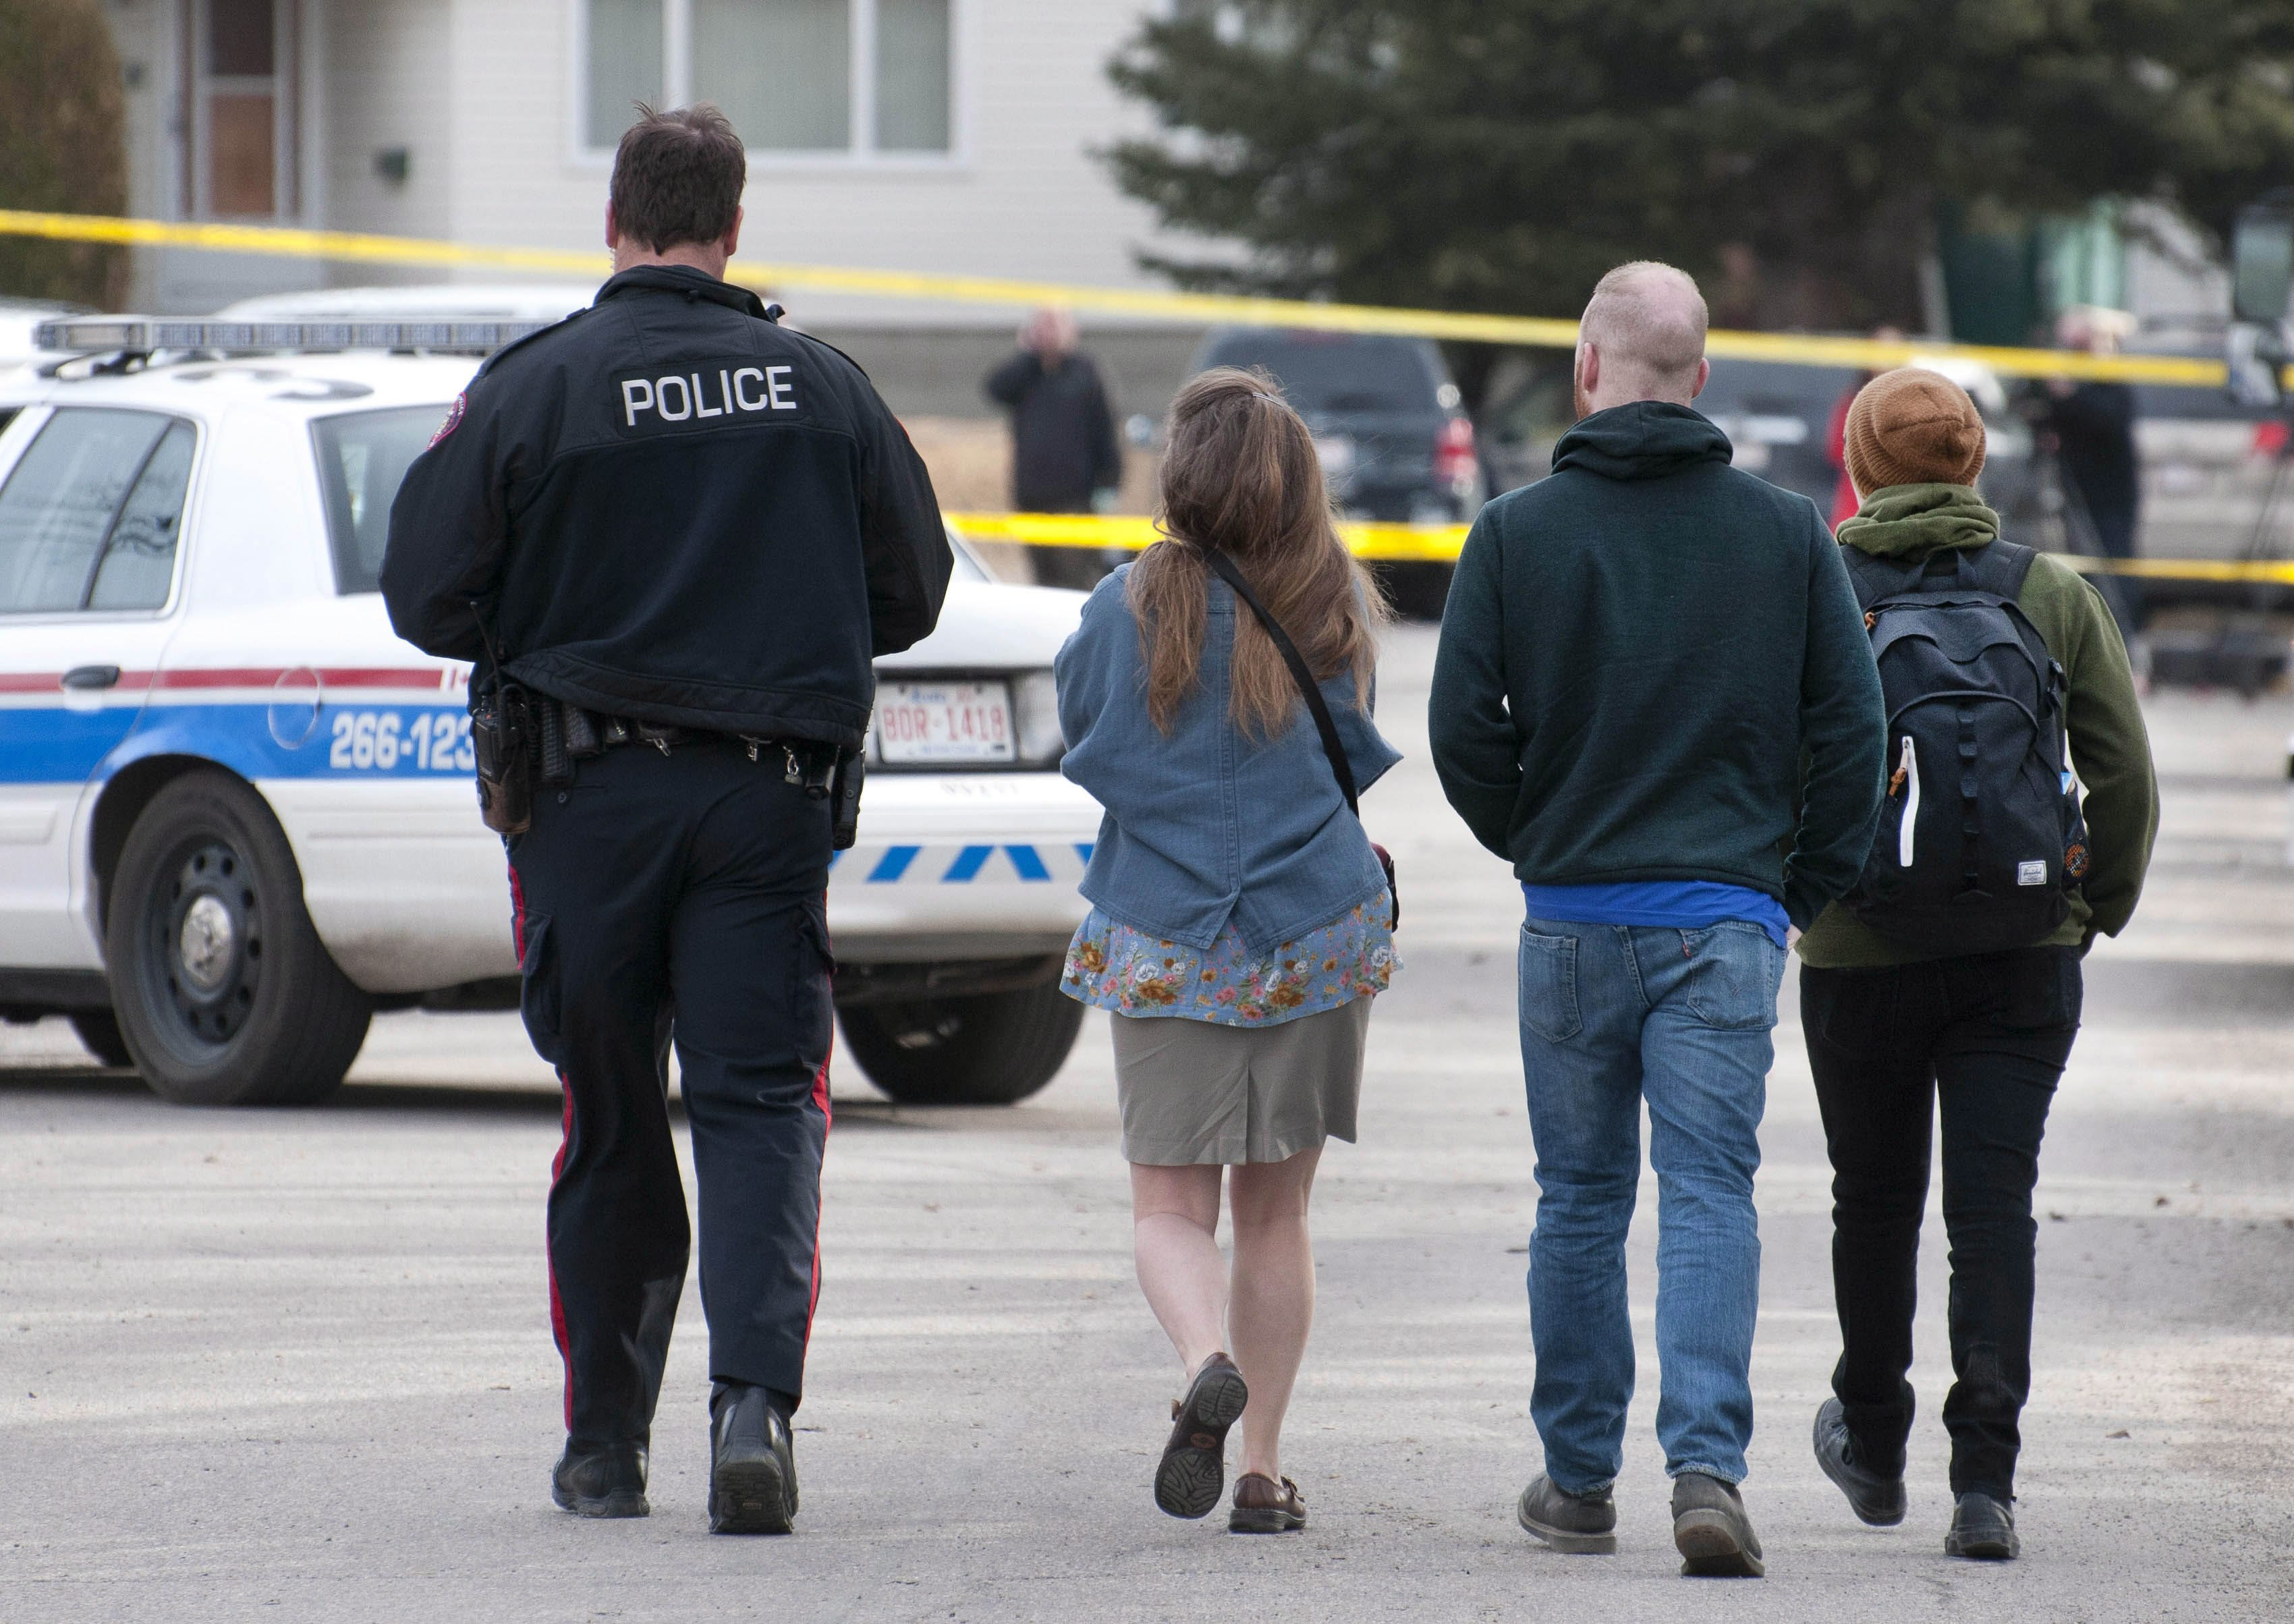 Calgary police lead away potential witnesses for statements regarding the multiple fatal stabbing in northwest Calgary, Canada, on April 15, 2014